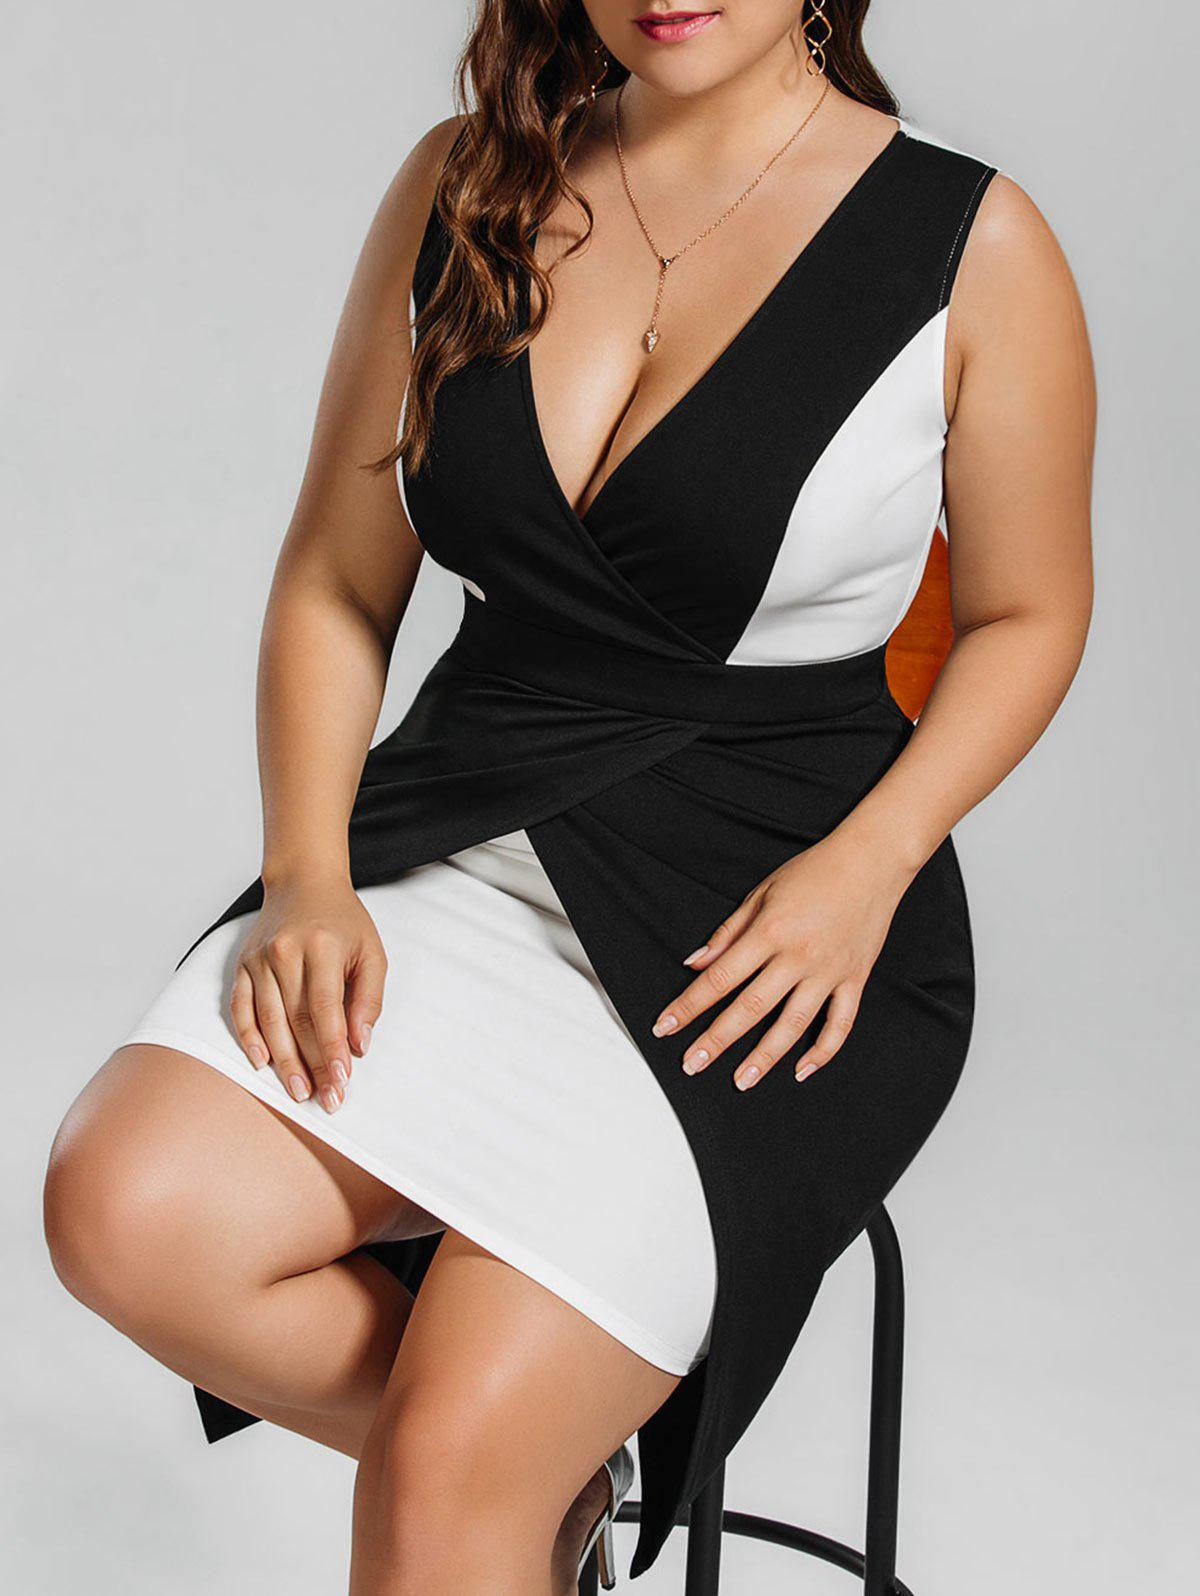 Hot Plus Size Low Cut Cocktail Tight Dress